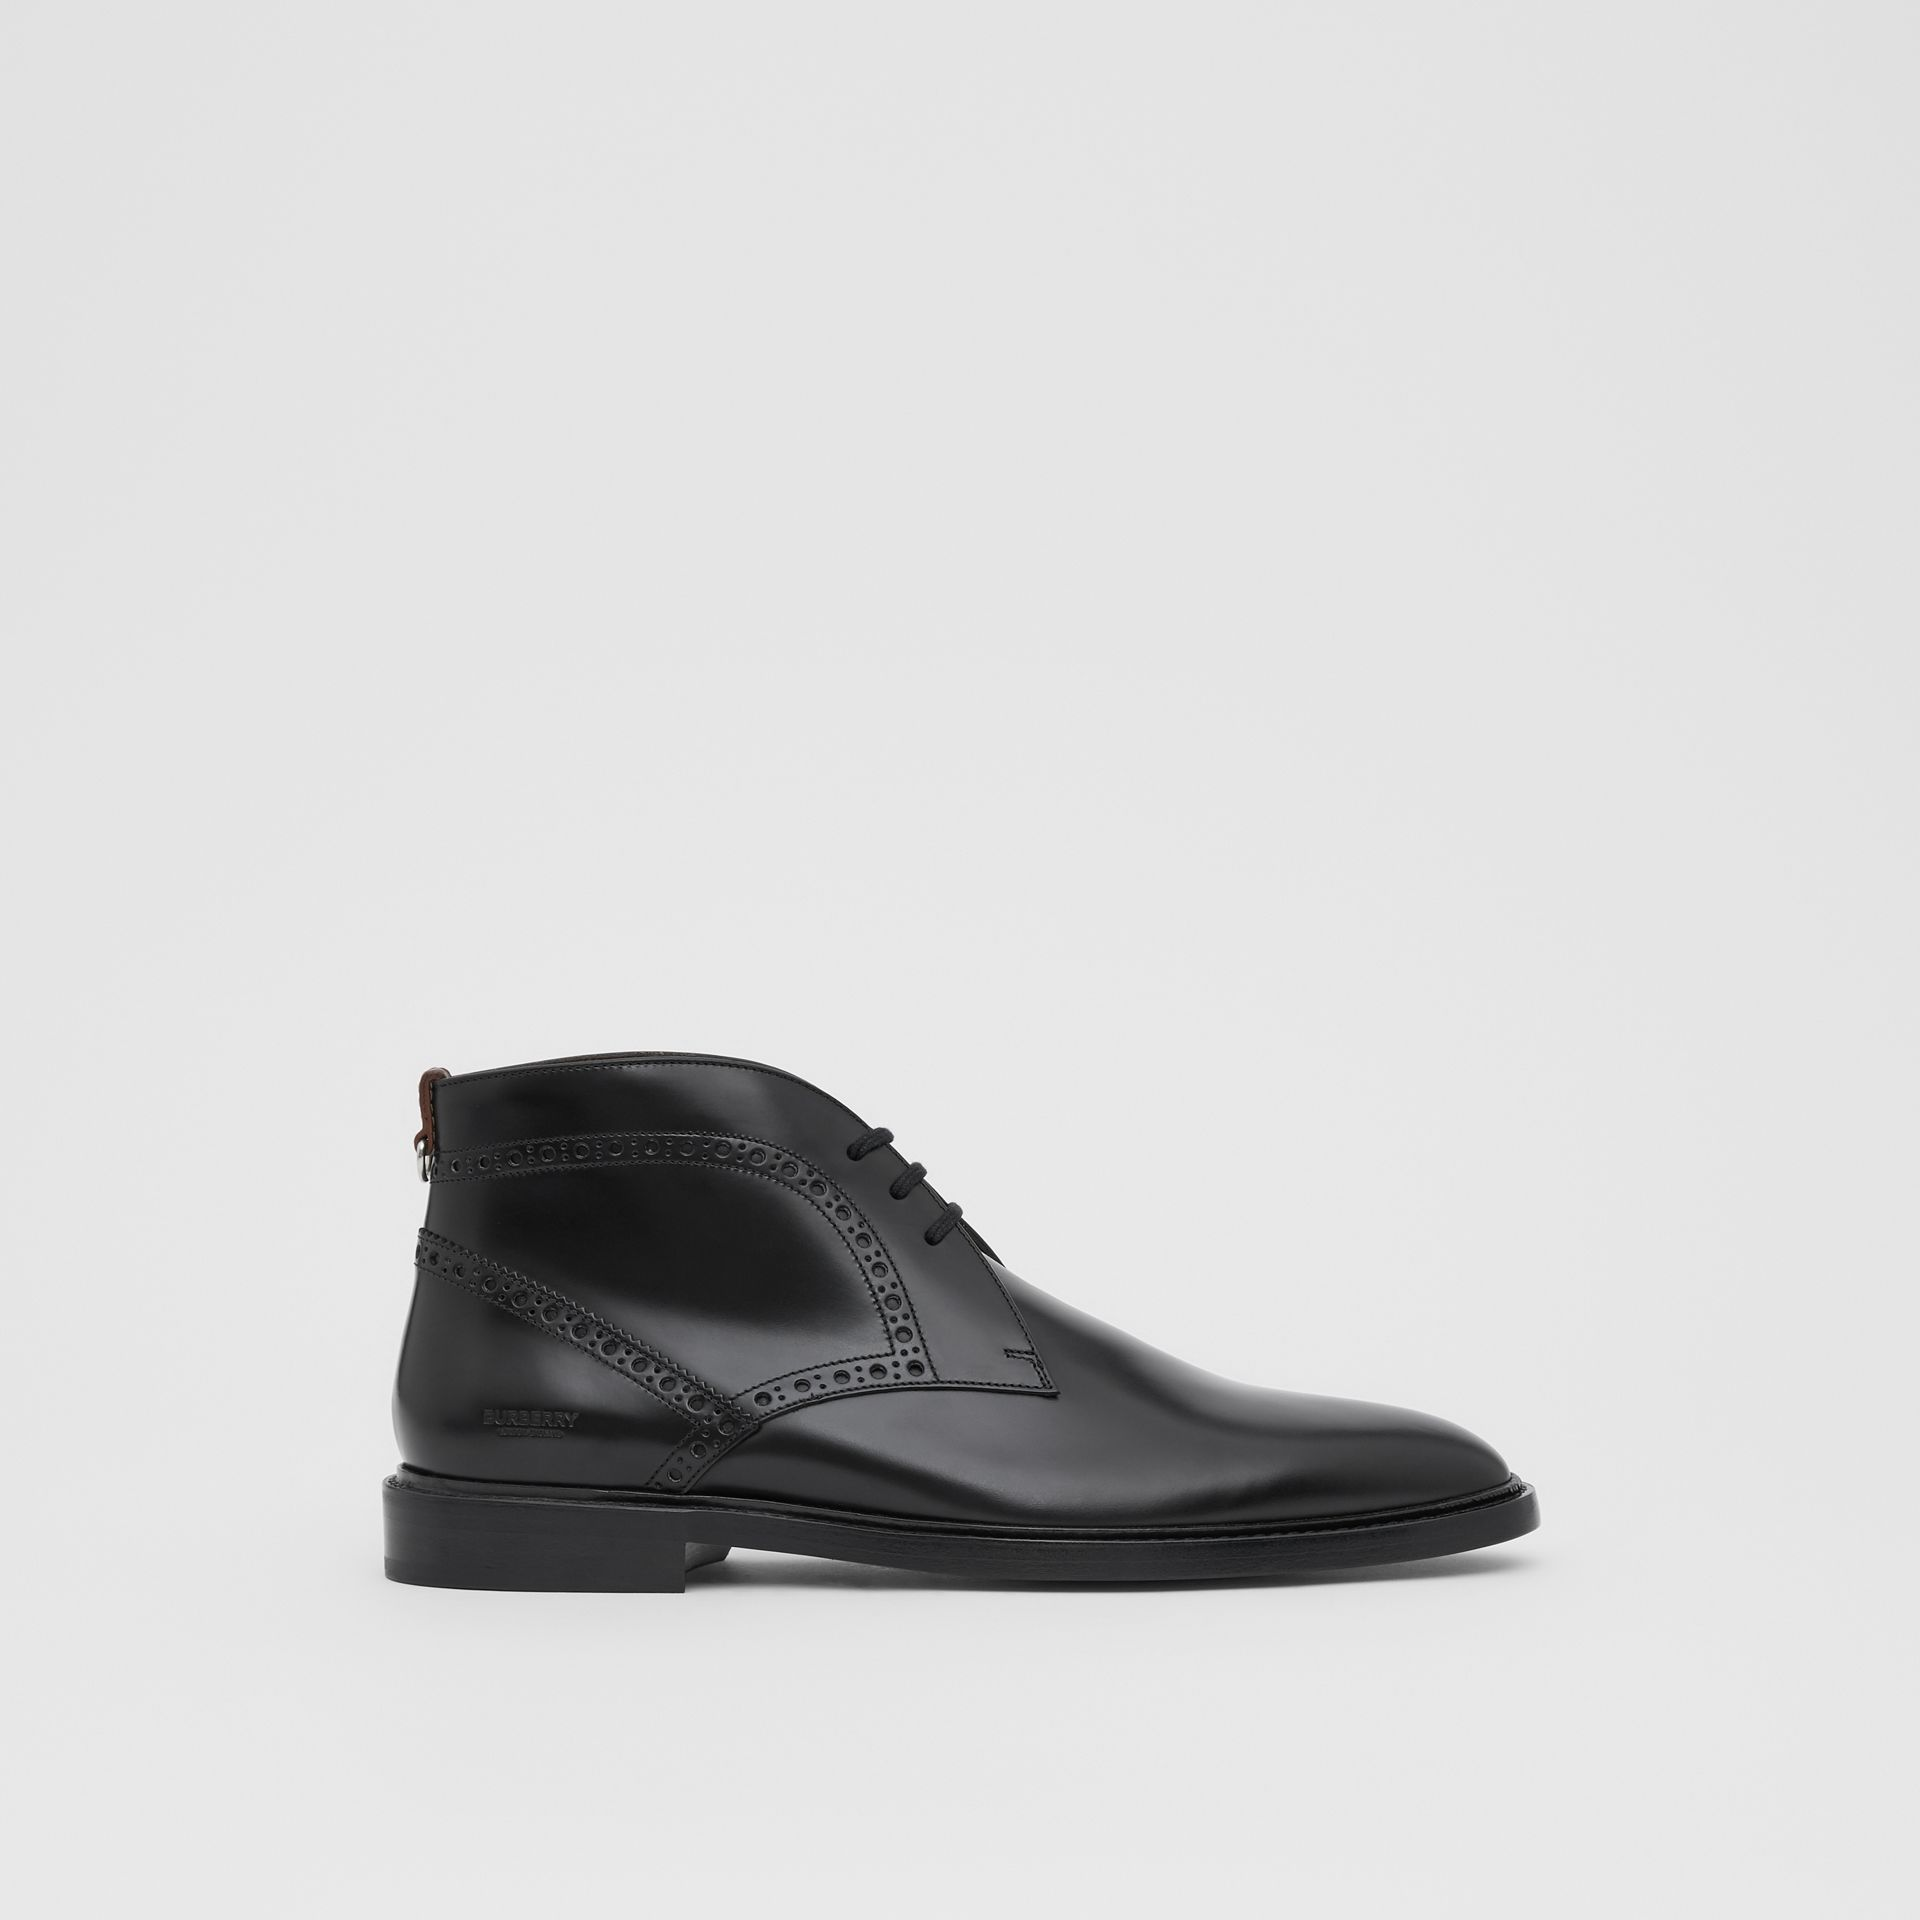 Brogue Detail Leather Boots in Black - Men | Burberry Hong Kong S.A.R - gallery image 4